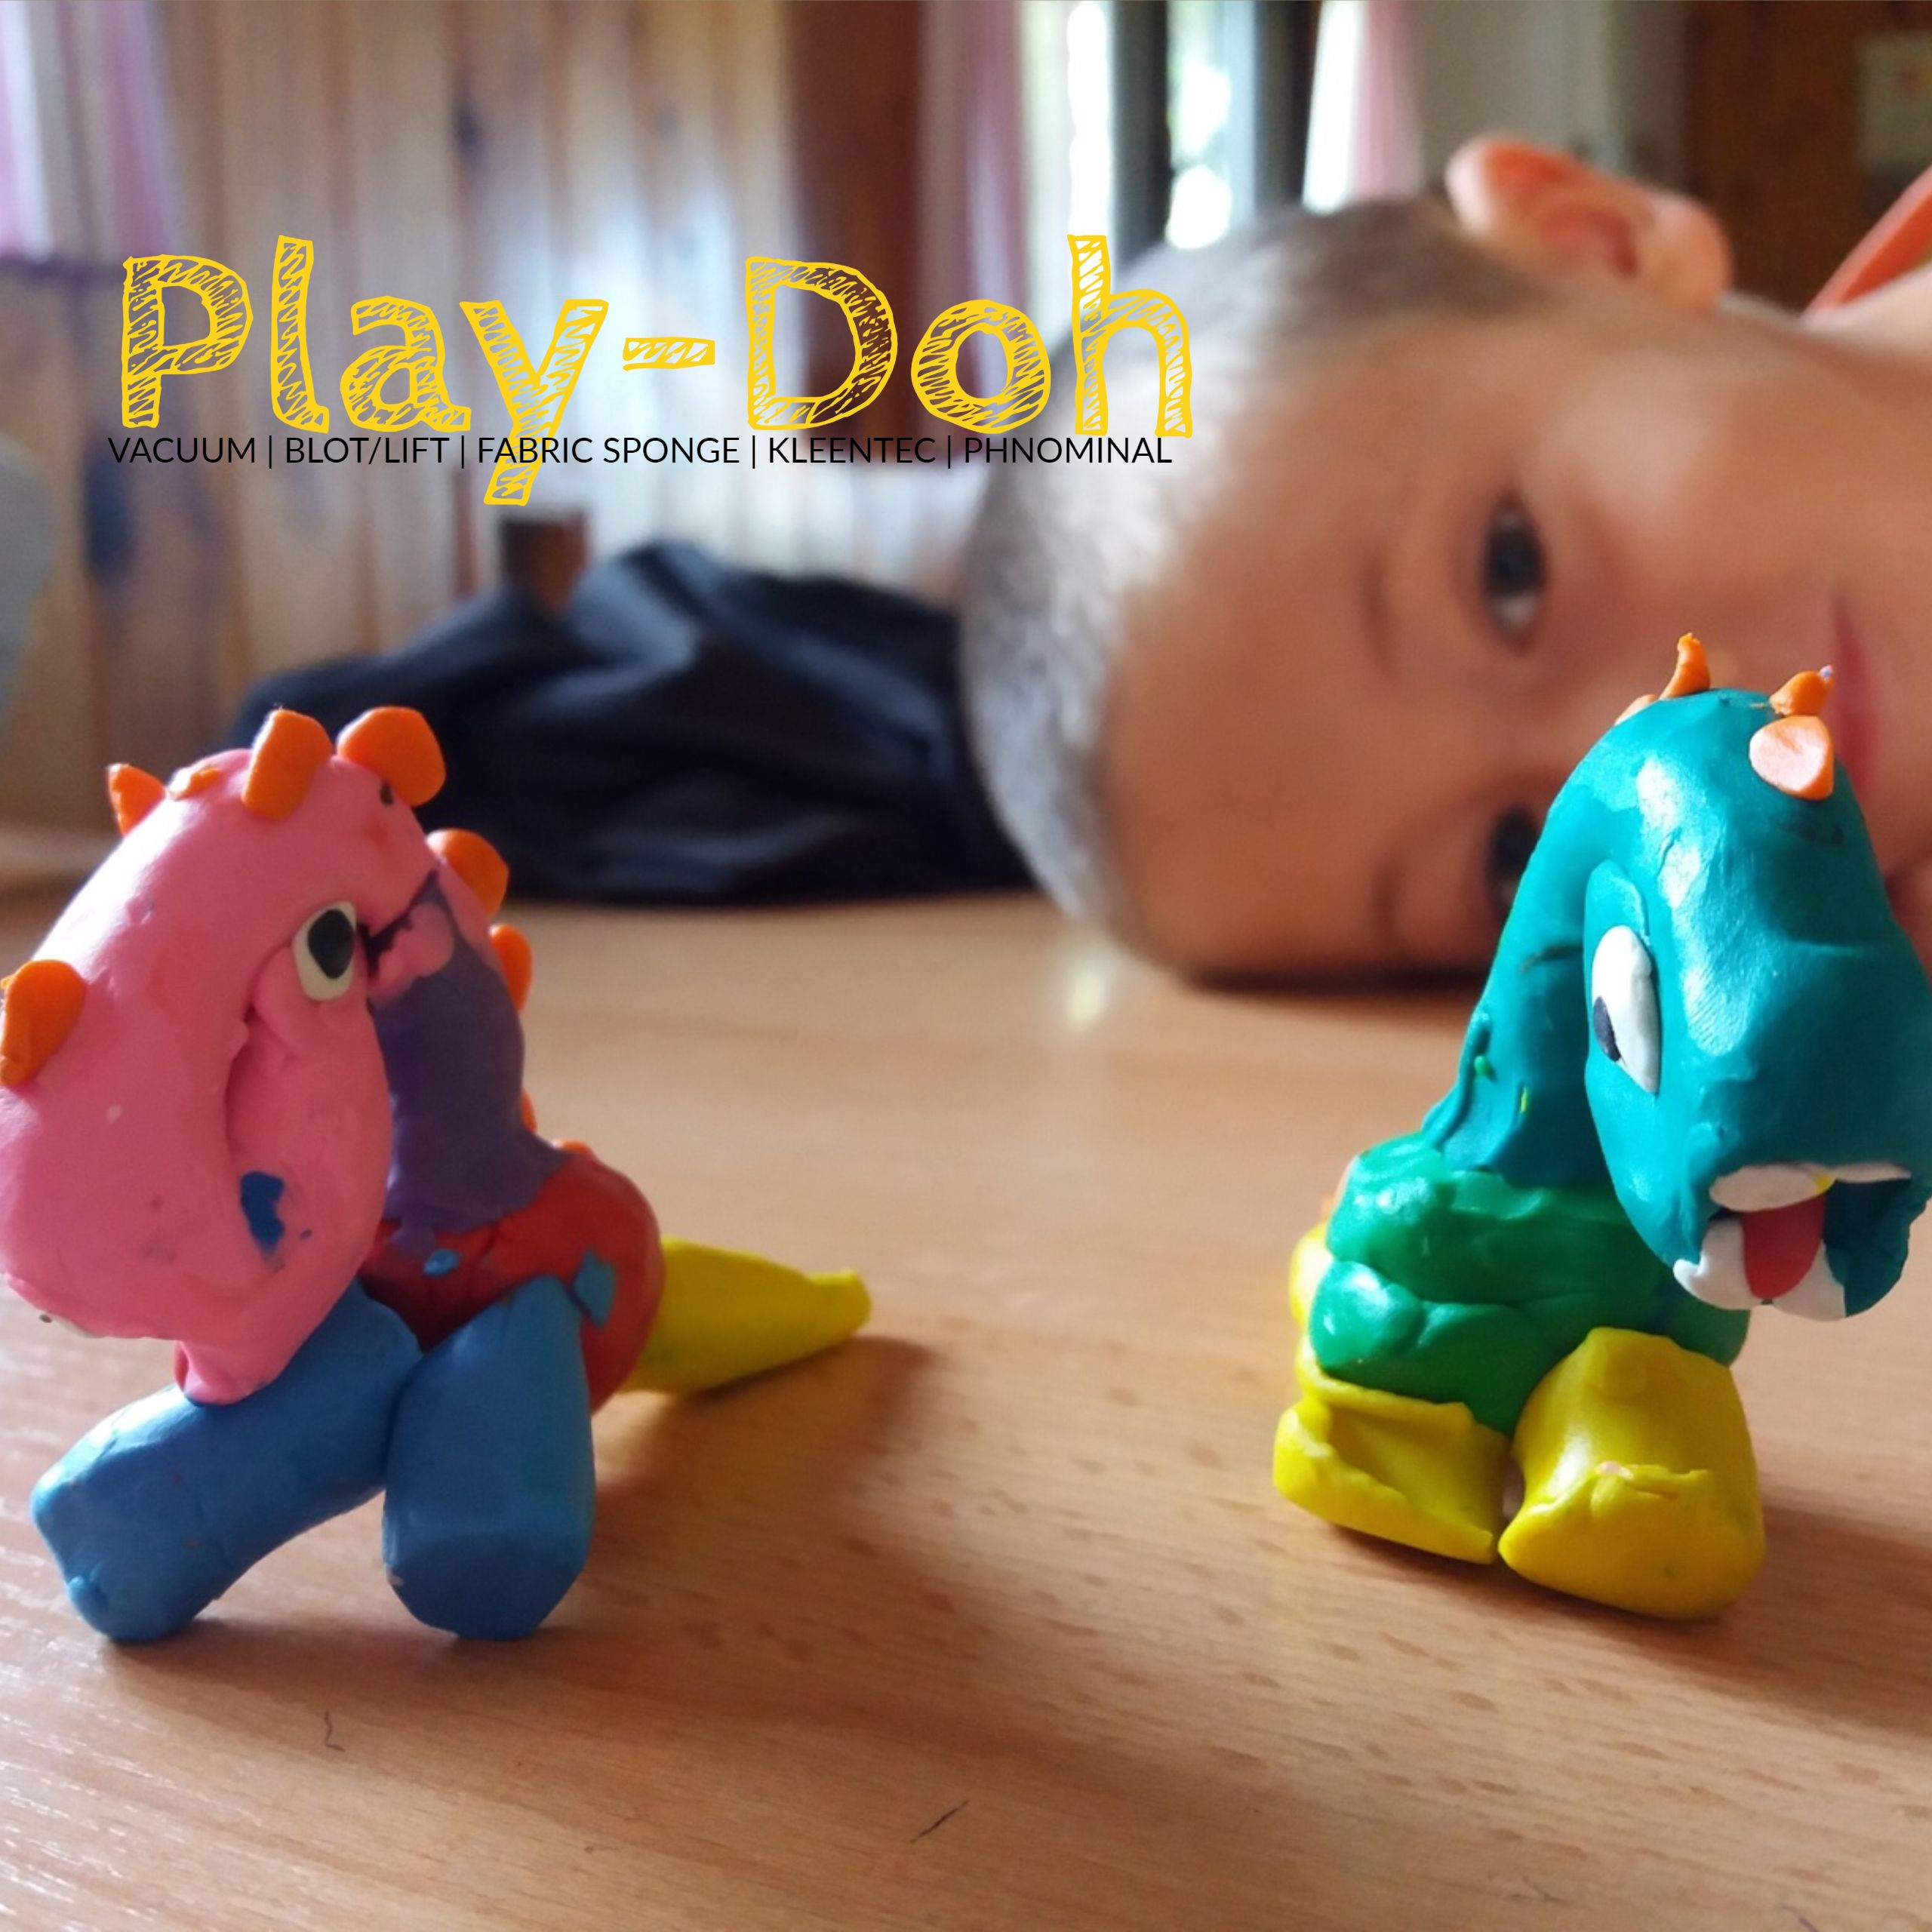 If You Have Children You Surely Know The Horror Of Finding A Play Dough Dinosaur Crushed Into Your Rug Stain Removal Guide Stain Remover Cleaning Upholstery